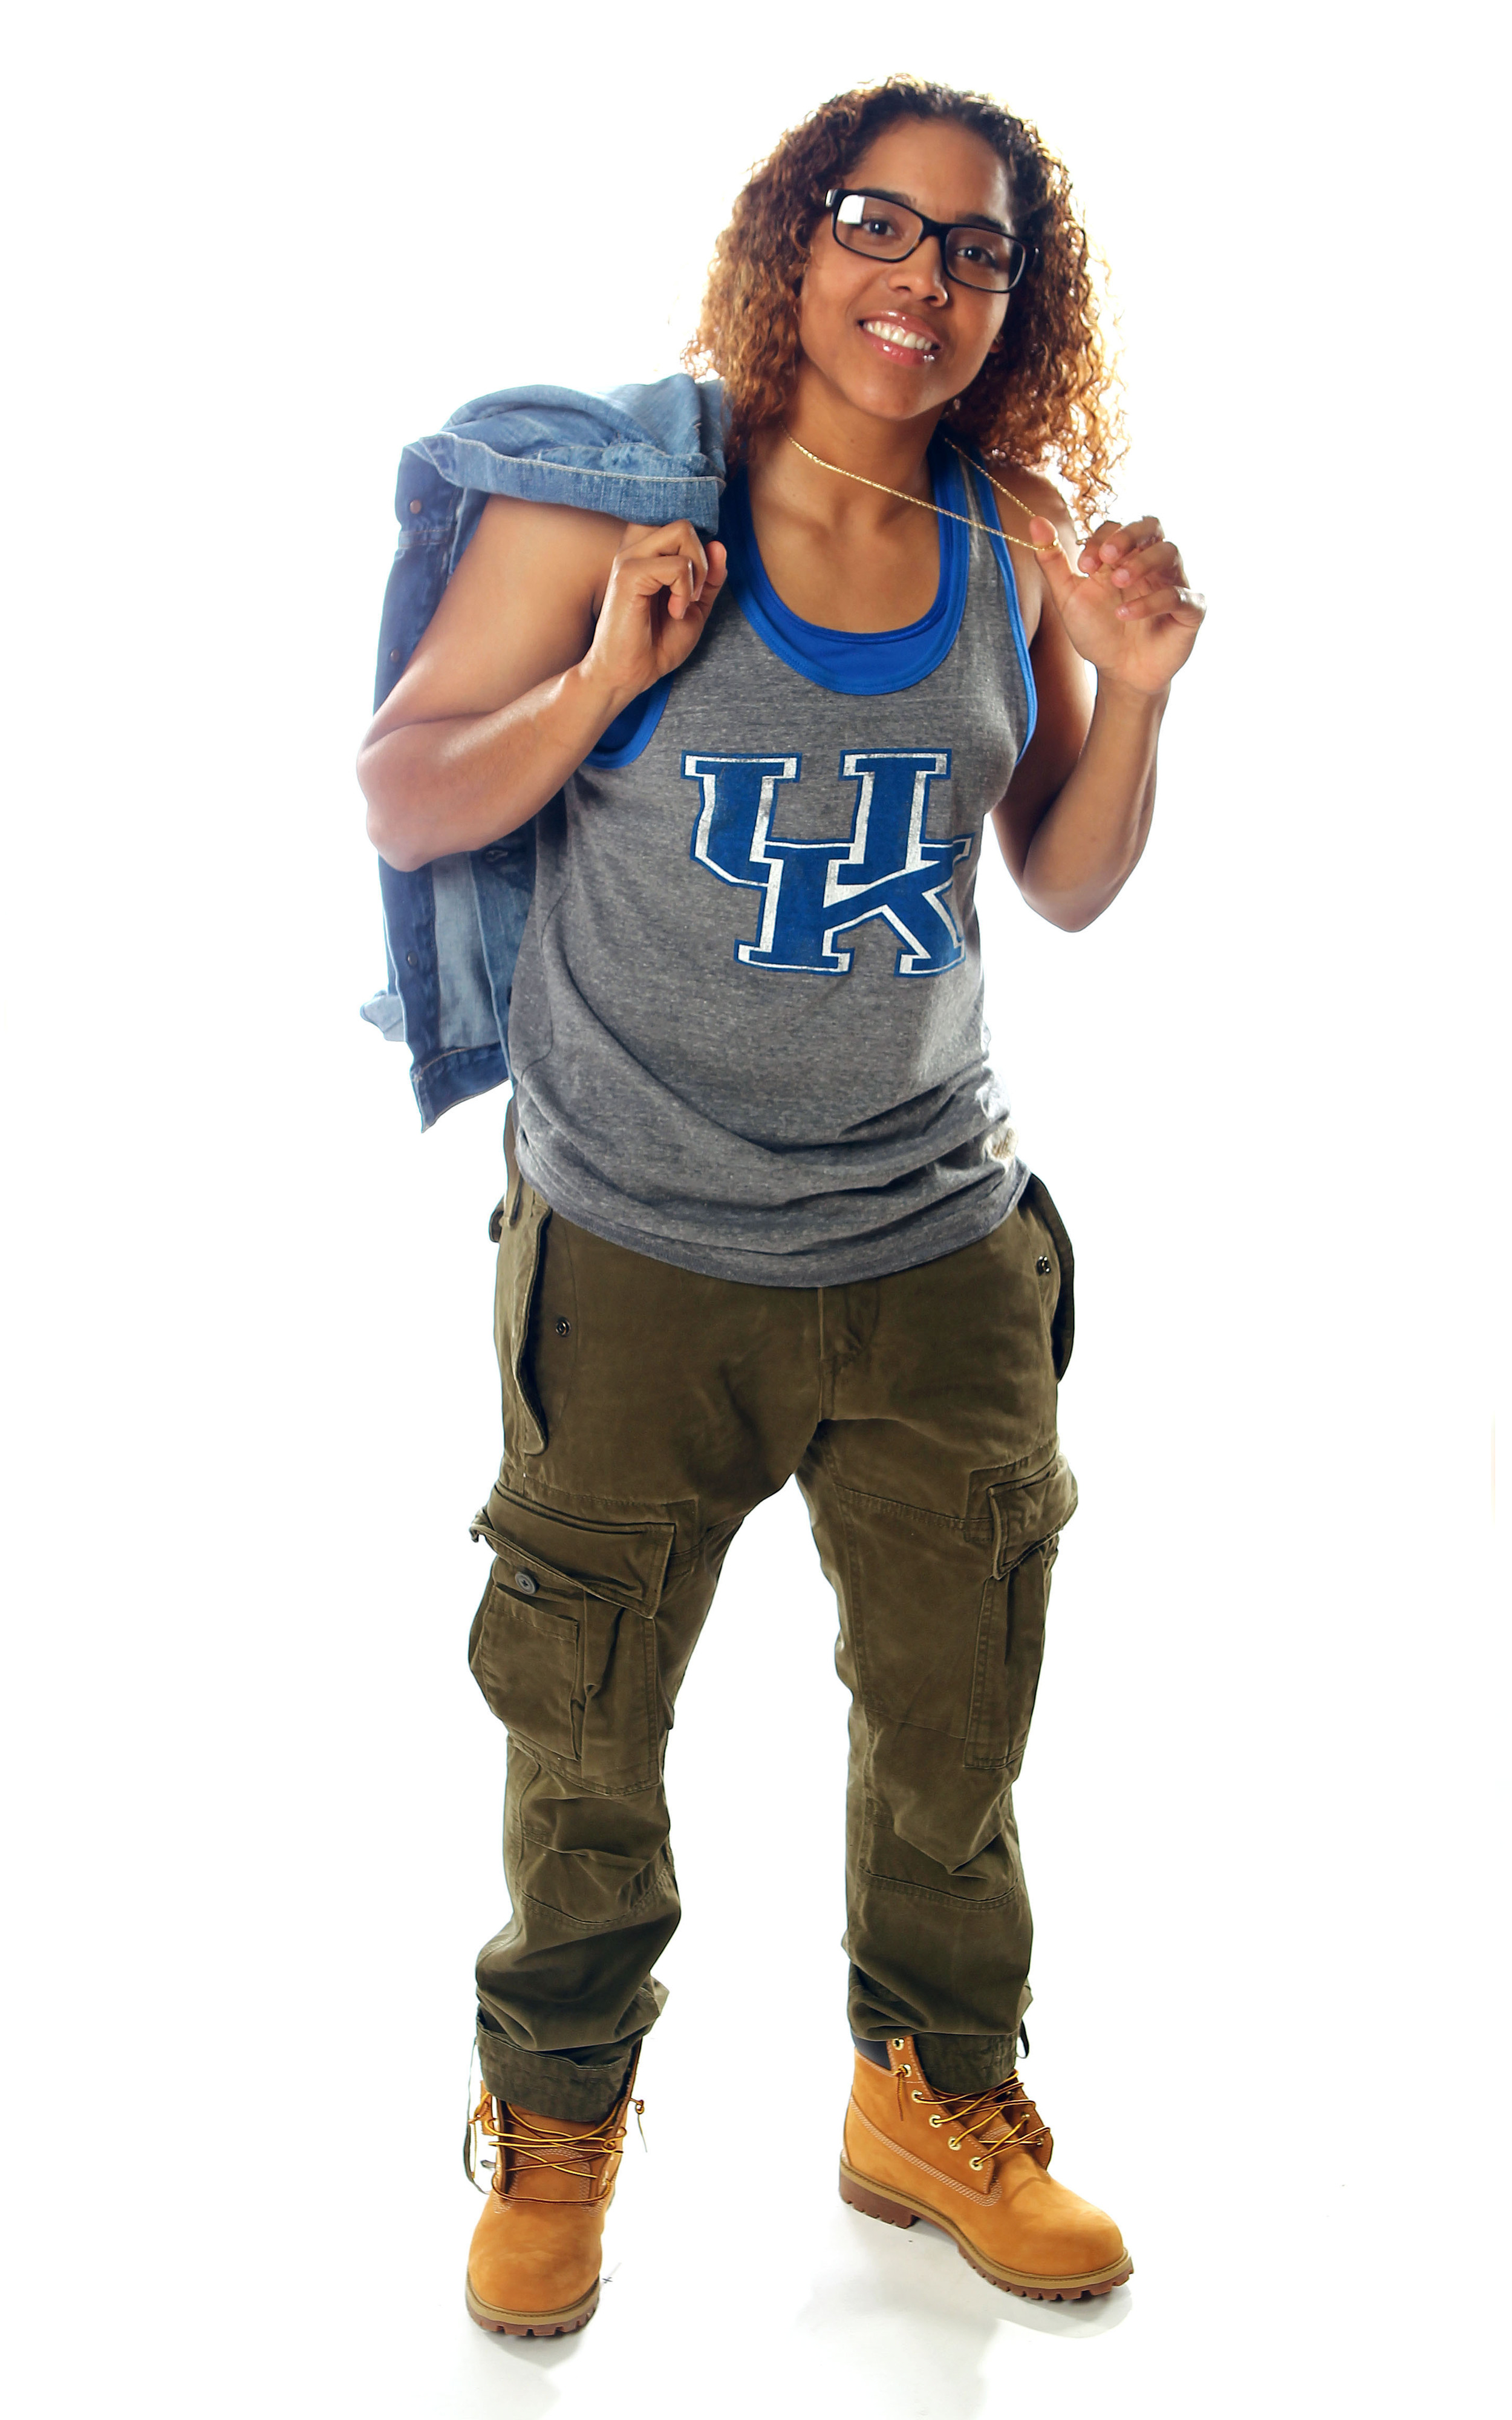 UK_wbball_outfits_032.jpg